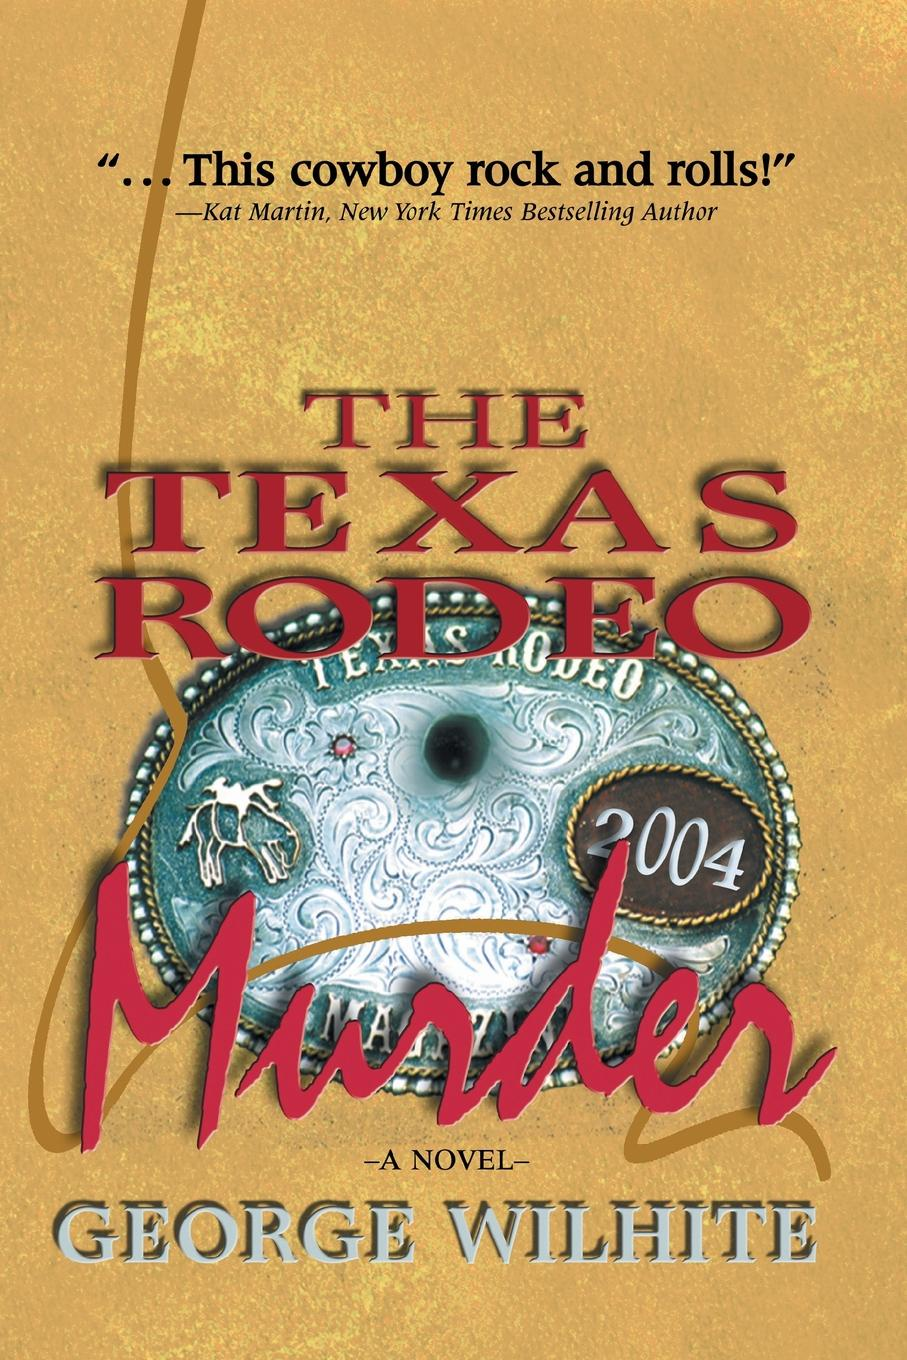 George Wilhite The Texas Rodeo Murder barbara daille white the rodeo man s daughter